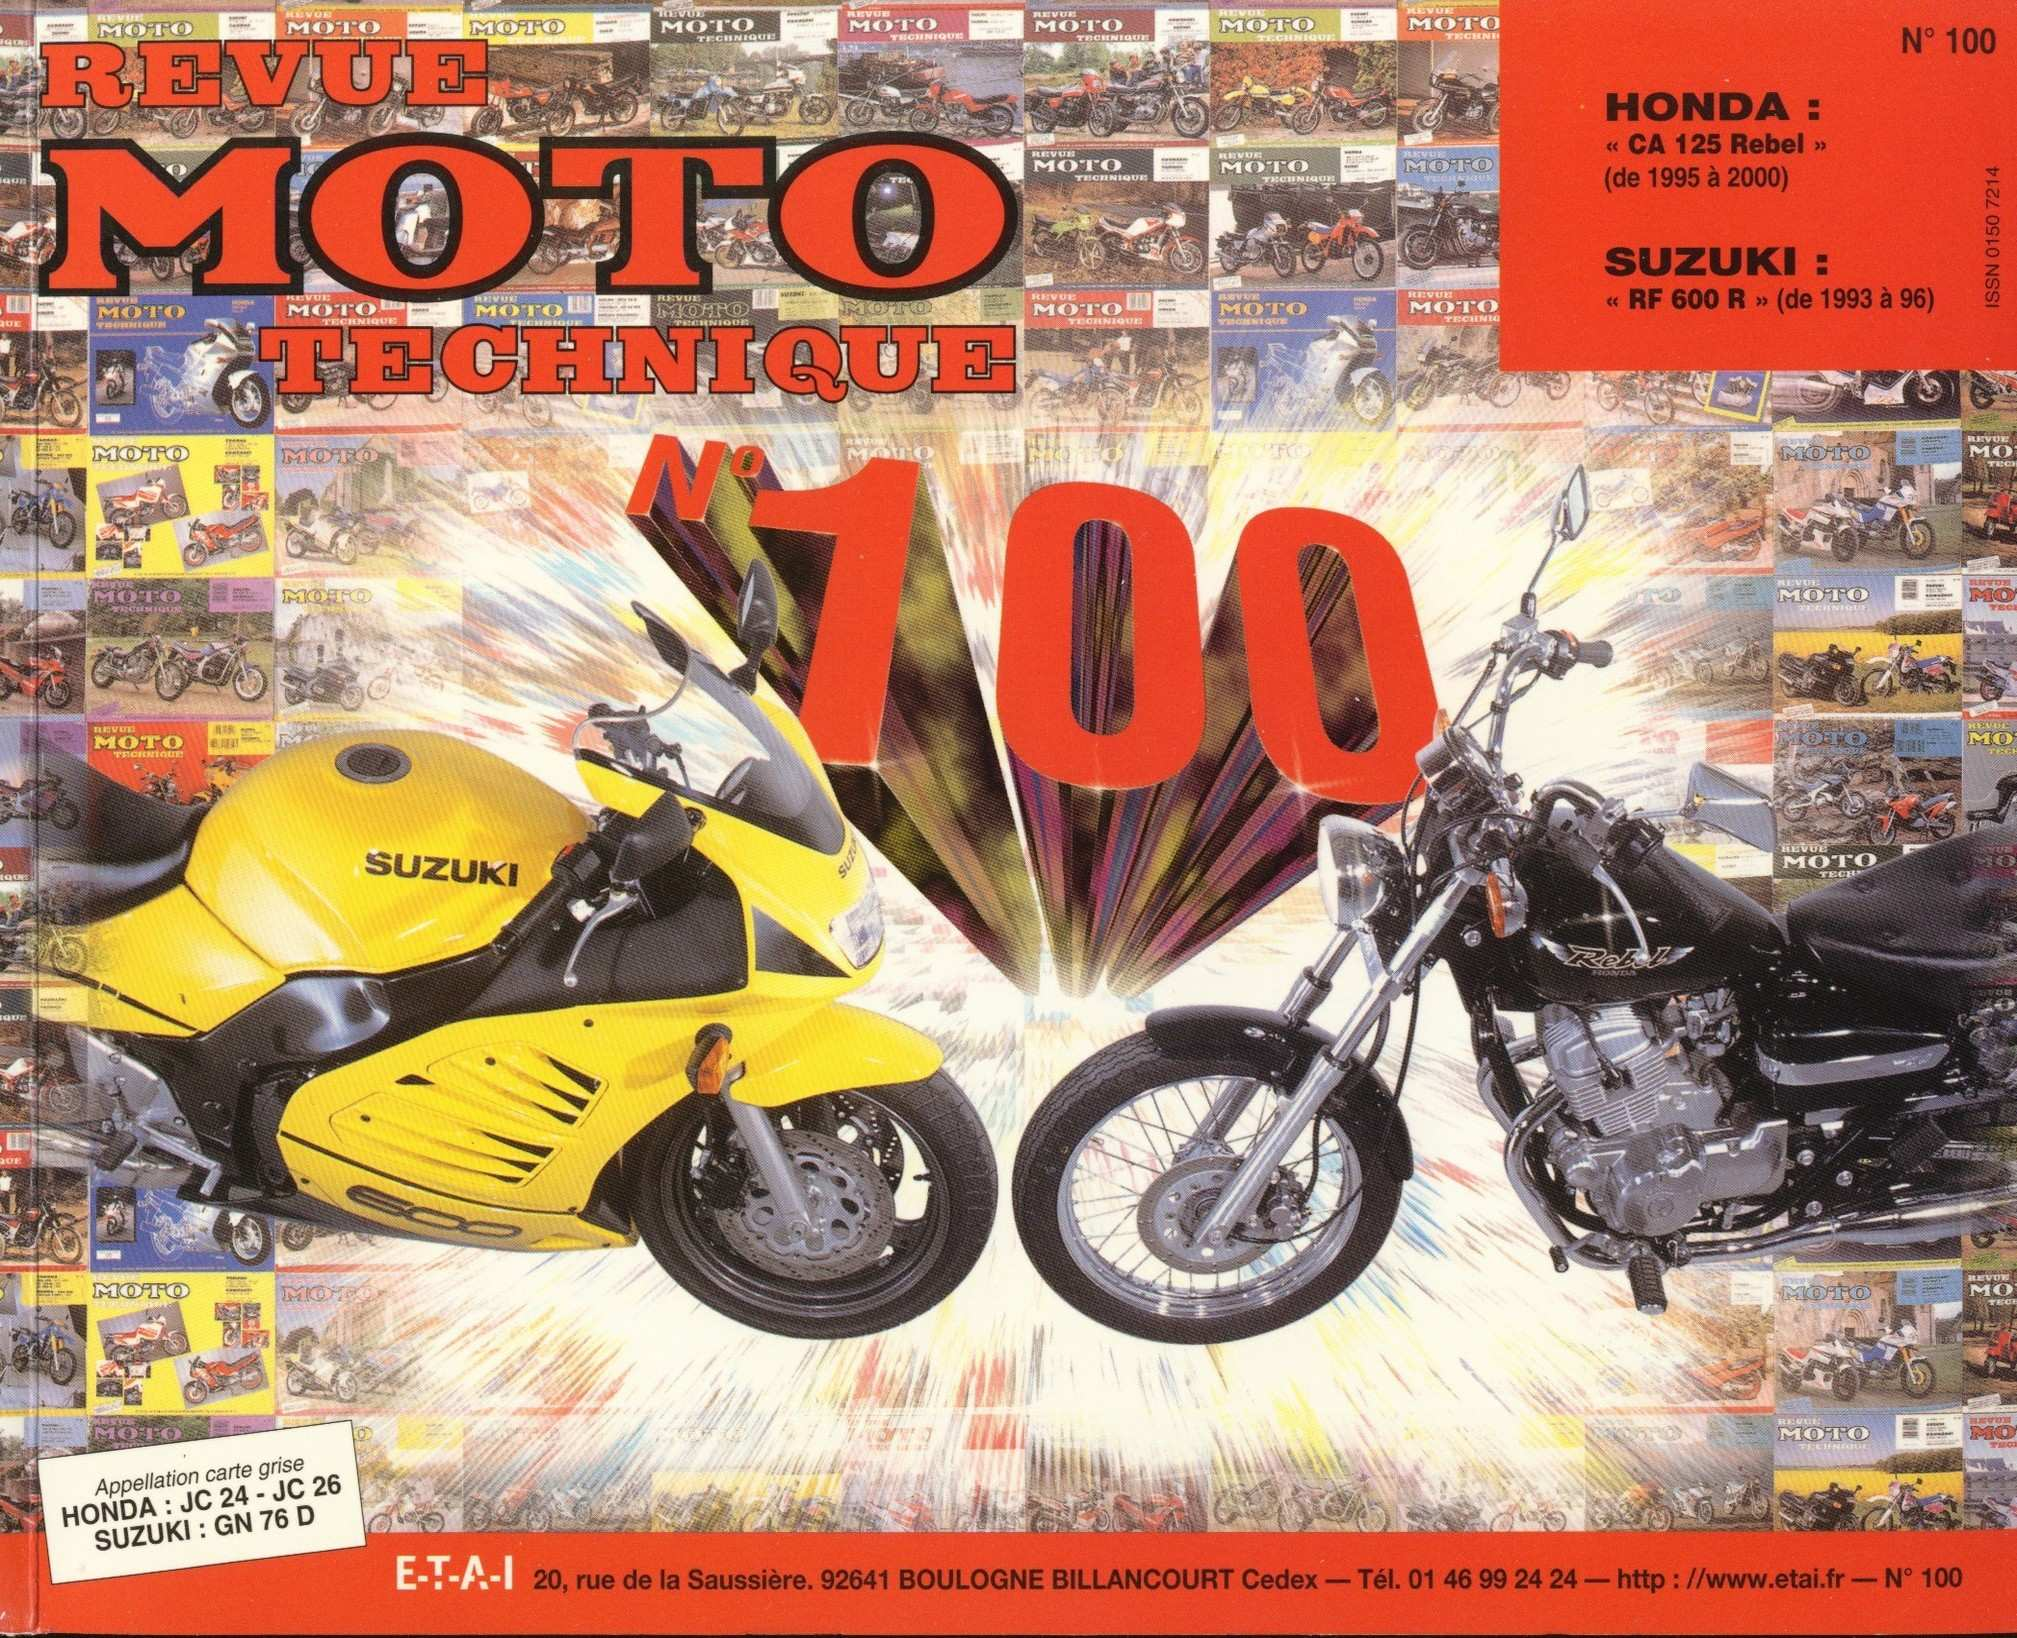 cy50 a wiring diagram free and safe pdf workshop manuals for your honda moped and motorbike  pdf workshop manuals for your honda